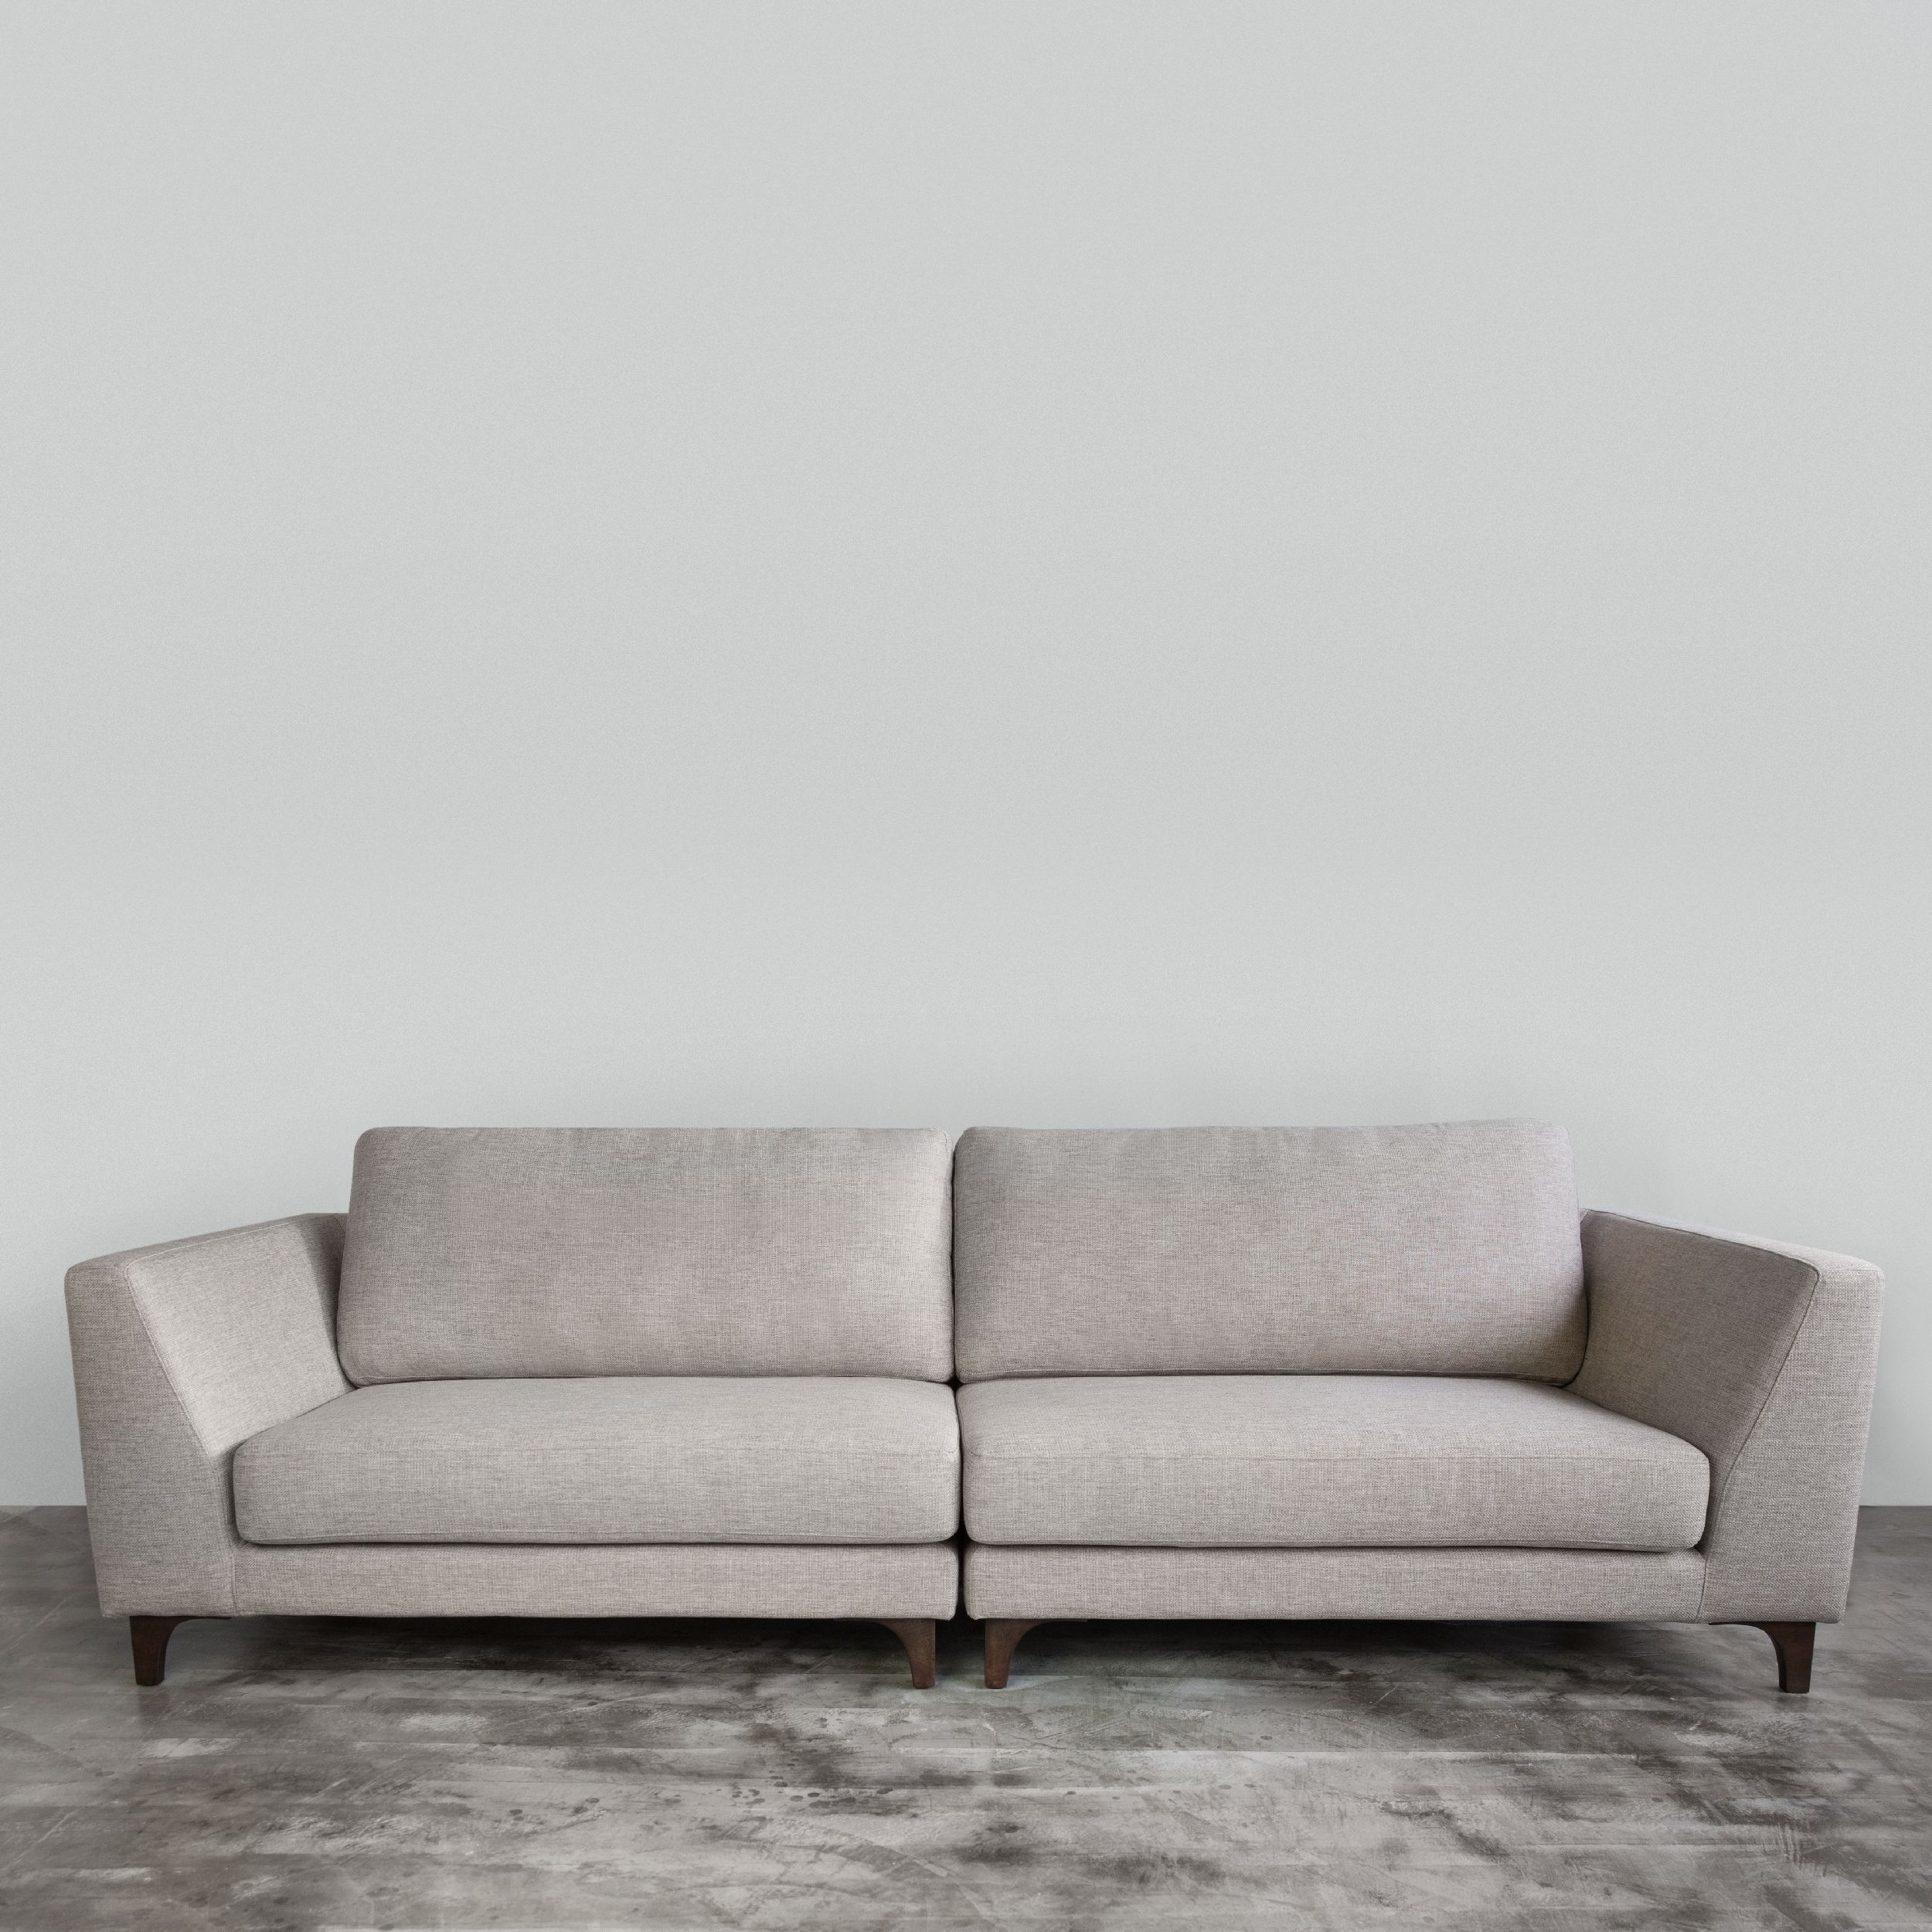 Prima fabric sofa all our sofas are built with a kiln dried hardwood frame for sturdiness and durability customizable in belgium acacia fabric with